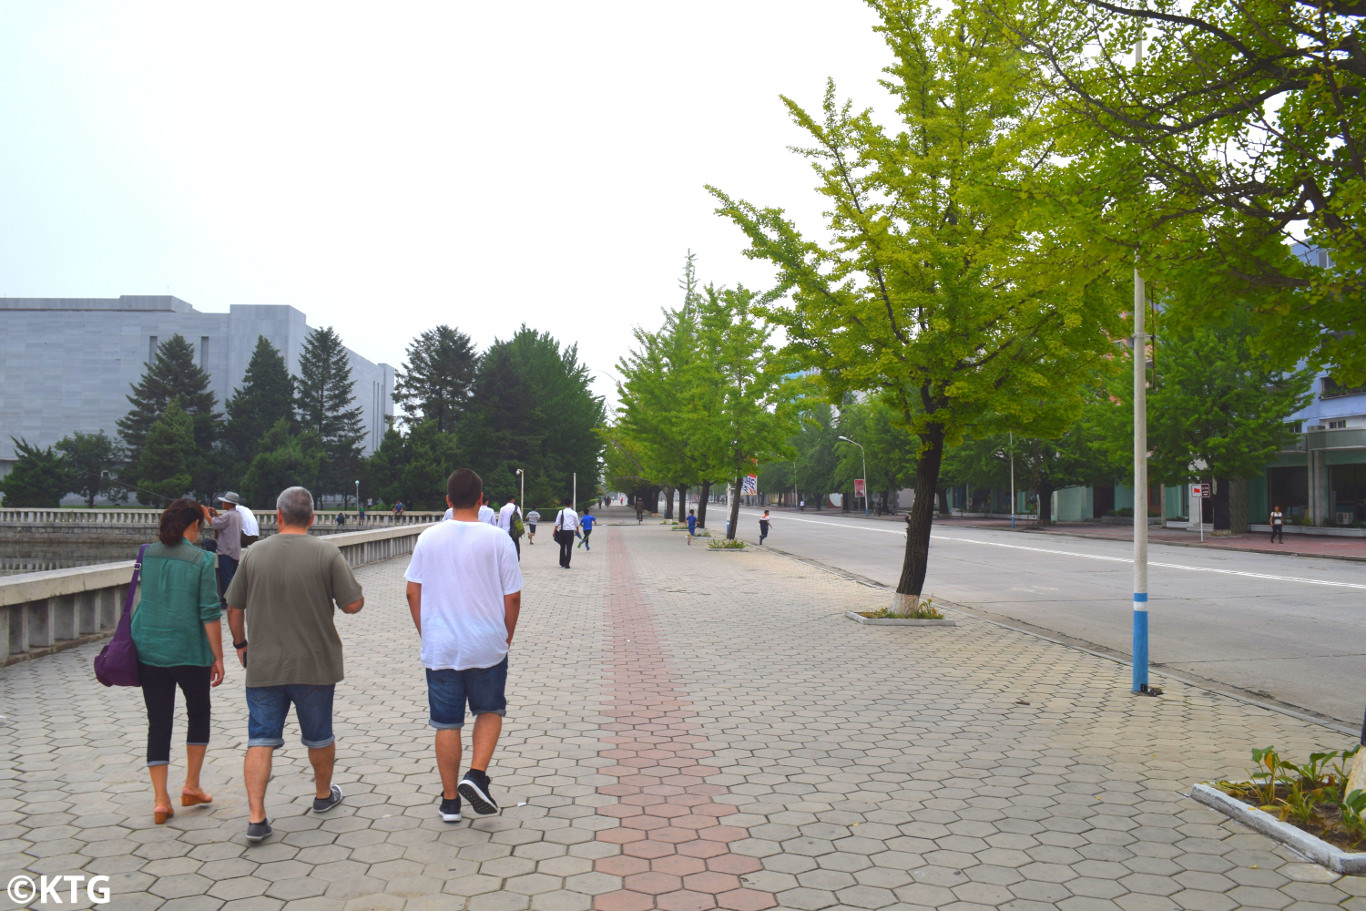 KTG travellers going for a walk outside the Songdowon Hotel in Wonsan city, Kangwon province, North Korea (DPRK). Trip arranged by KTG Tours